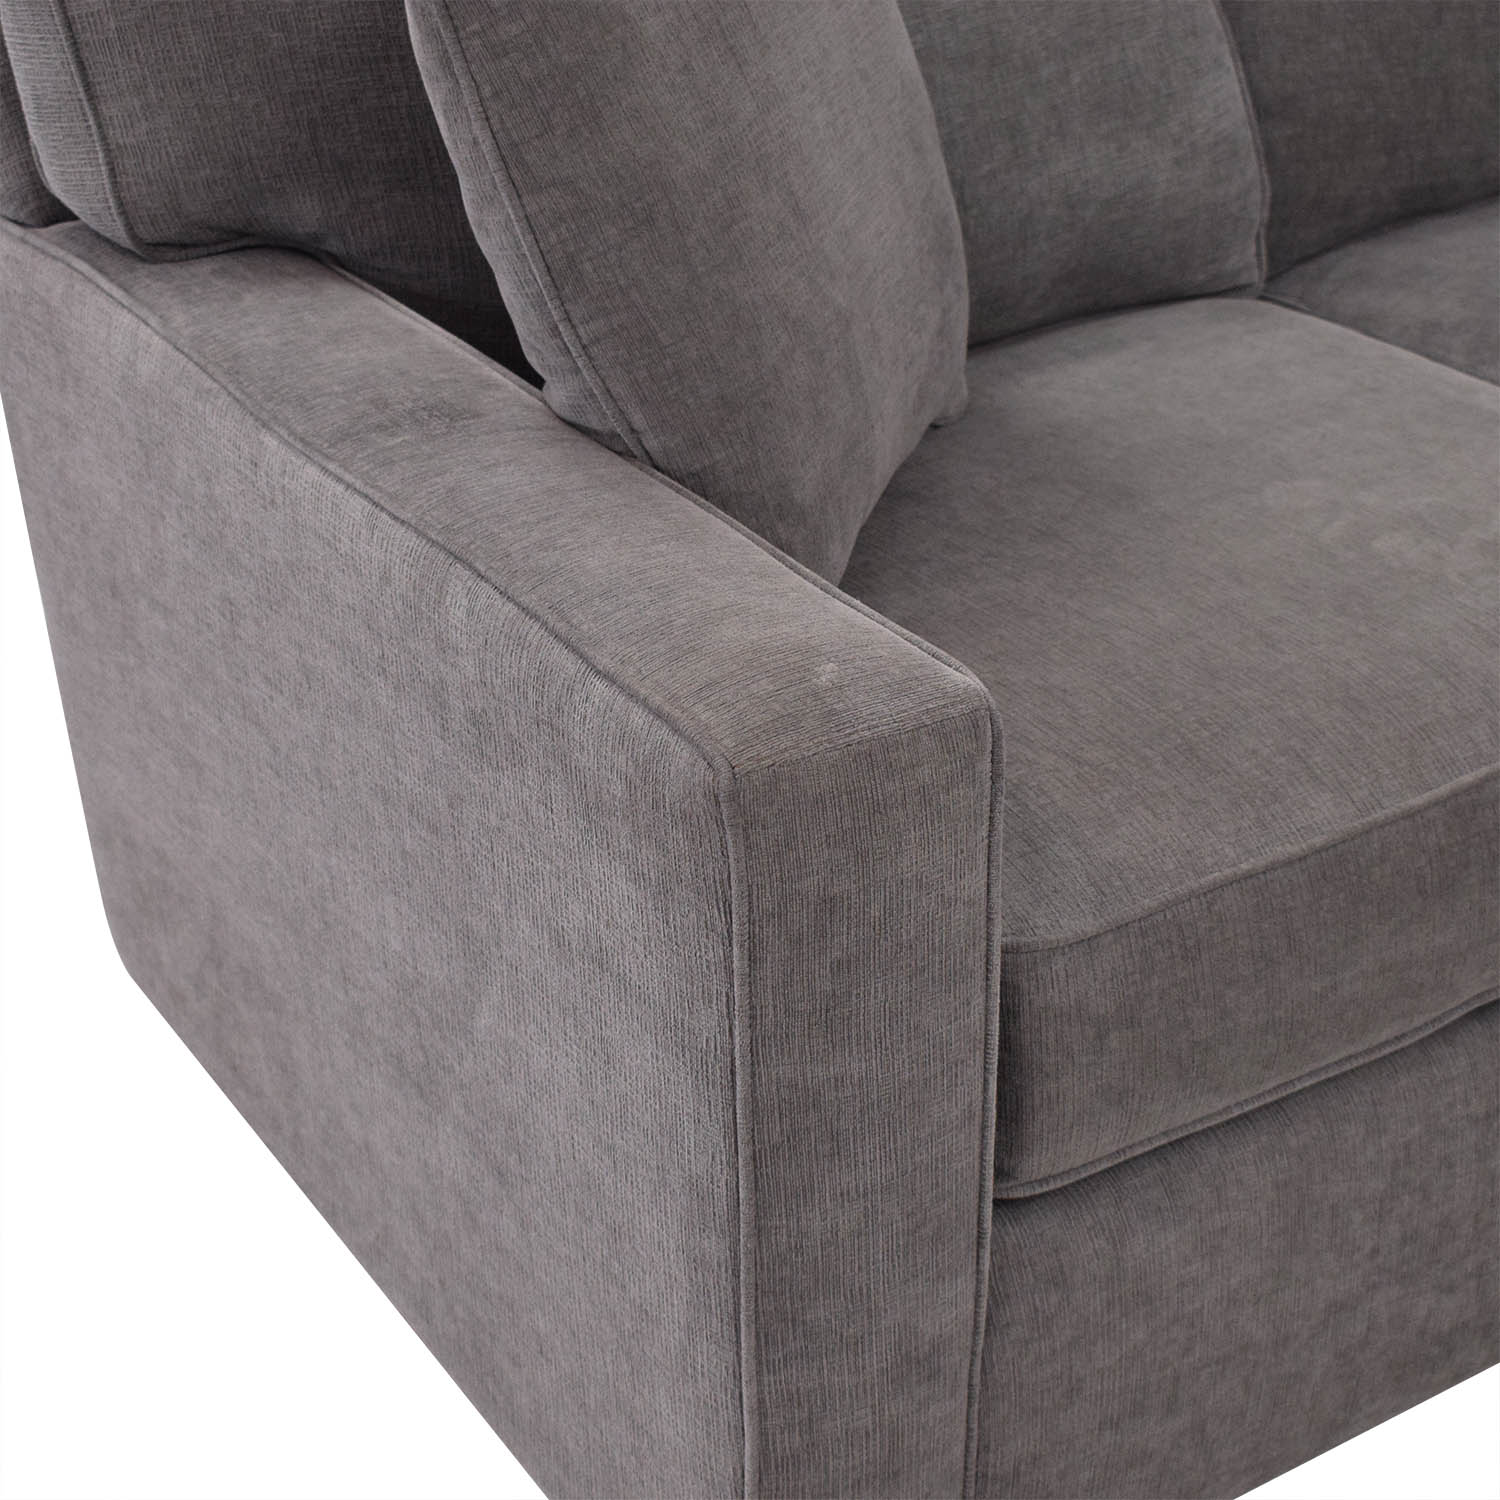 buy Macy's Radley Fabric 6-Piece Chaise Sectional Sofa with Corner Piece and Ottoman Macy's